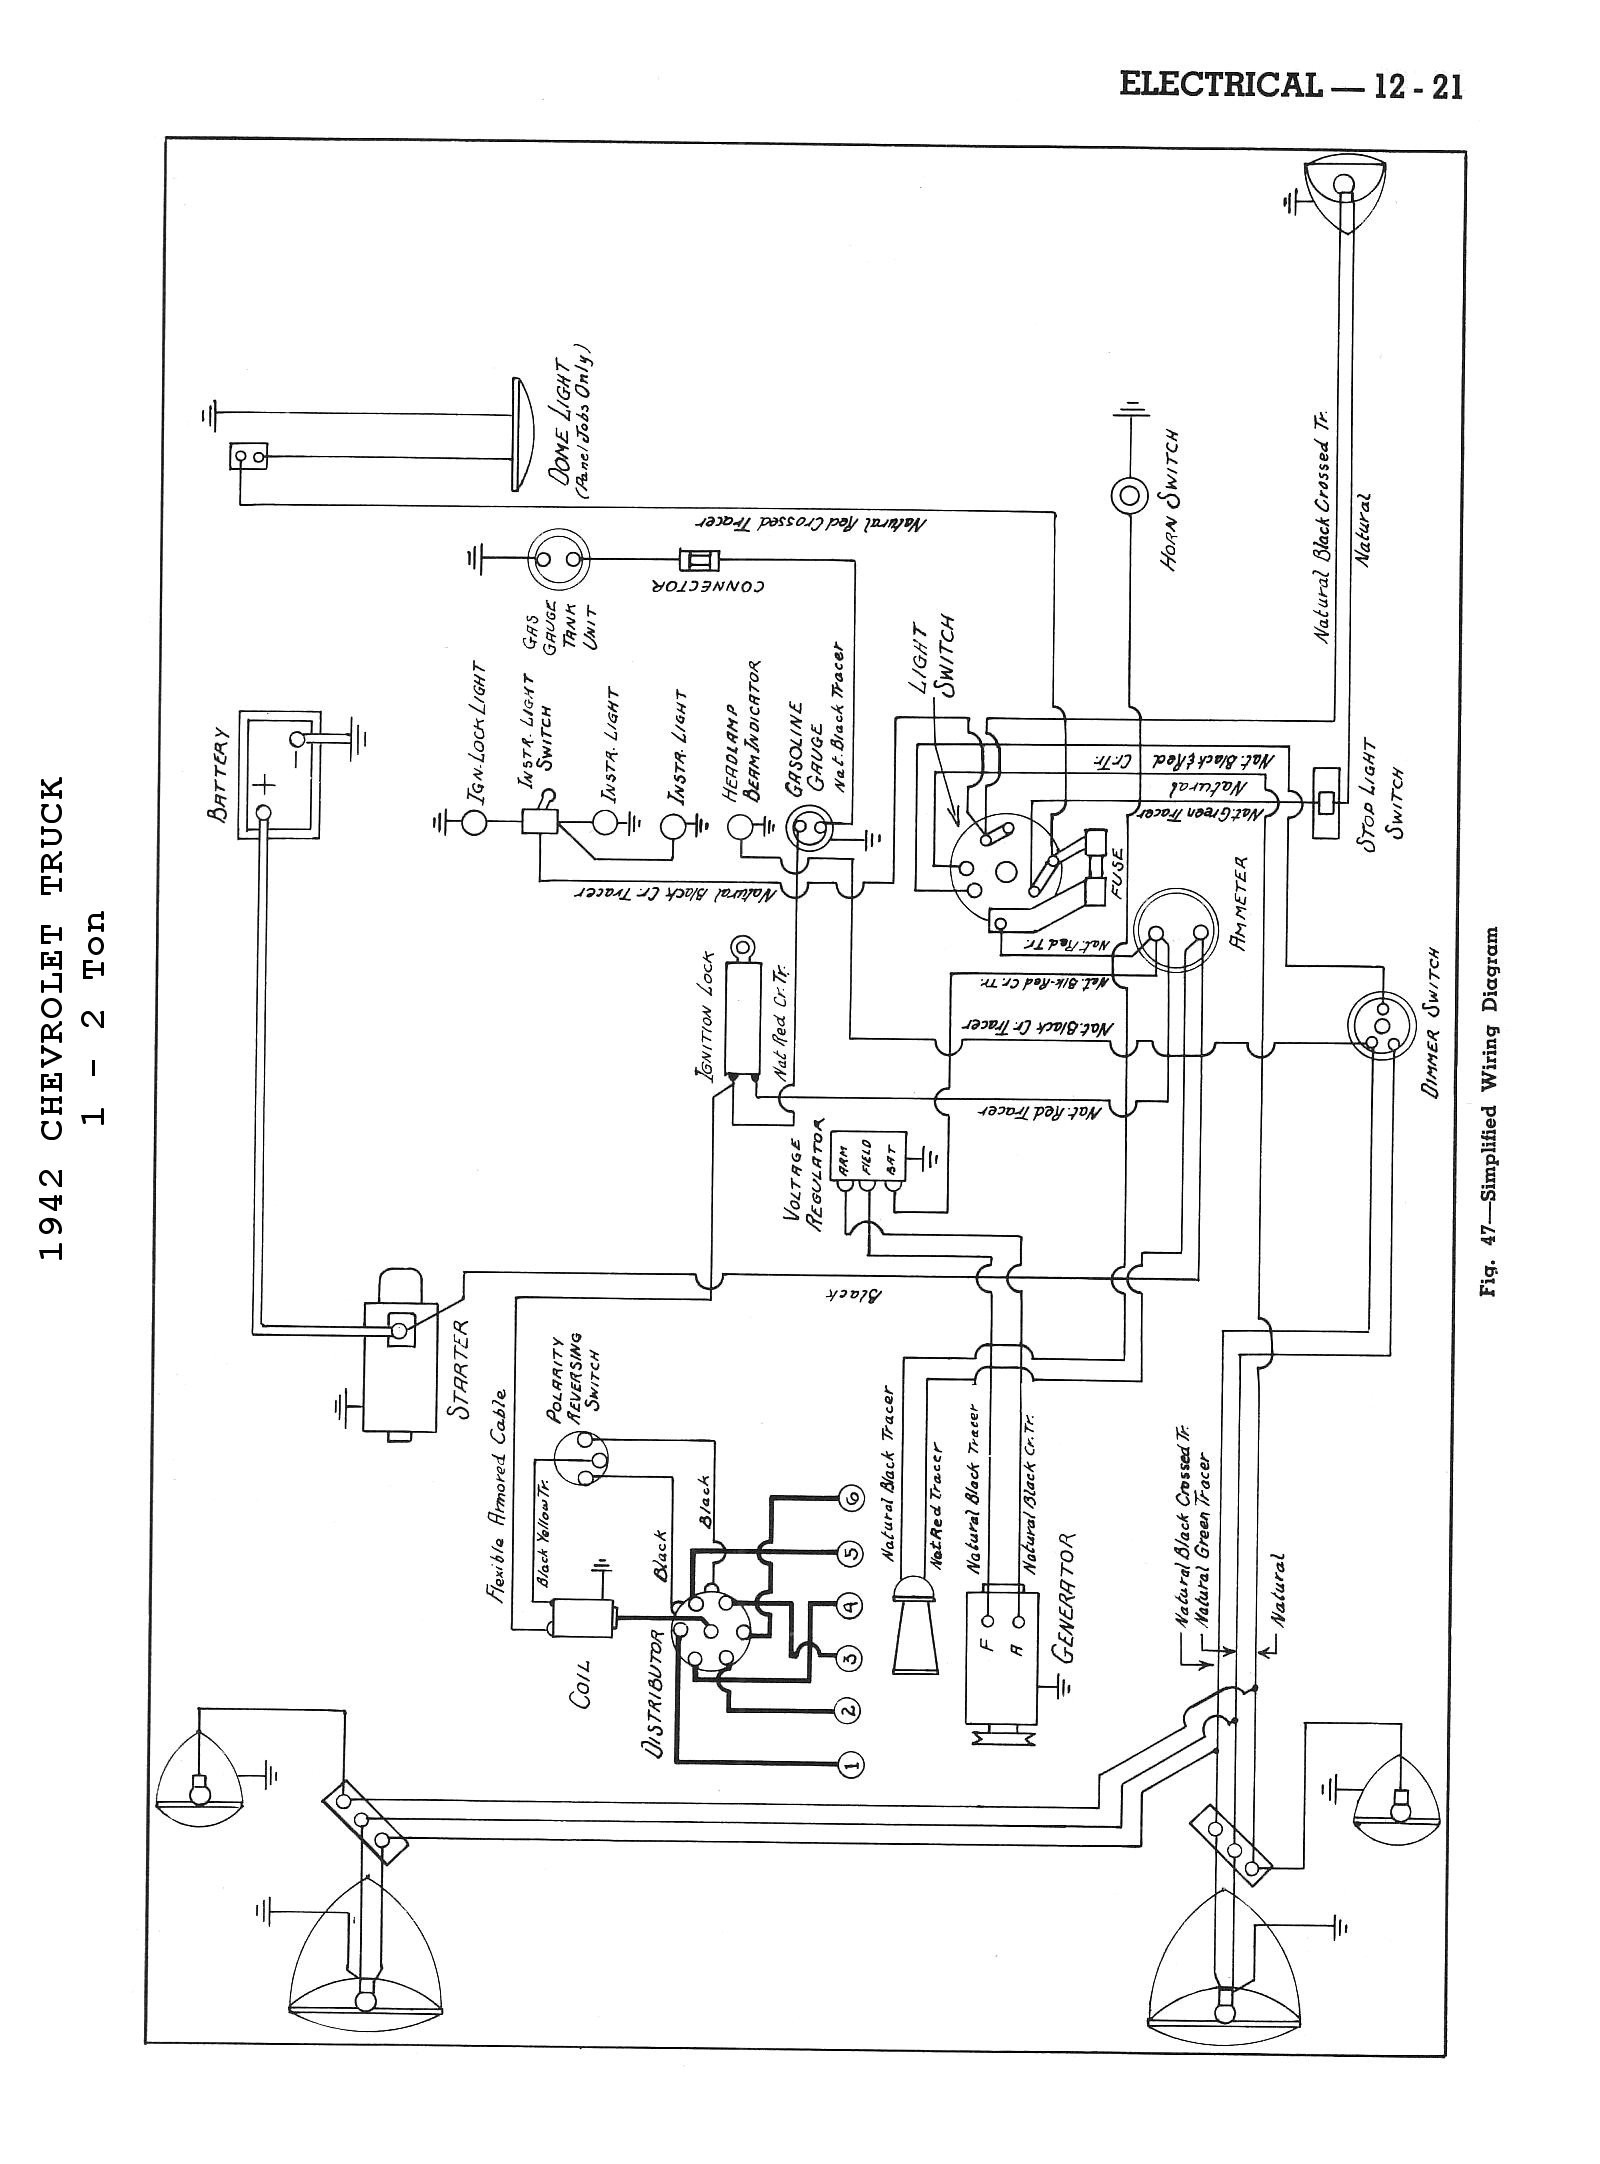 1959 Chevy Truck Wiring Diagram 1982 For Diagrams Of